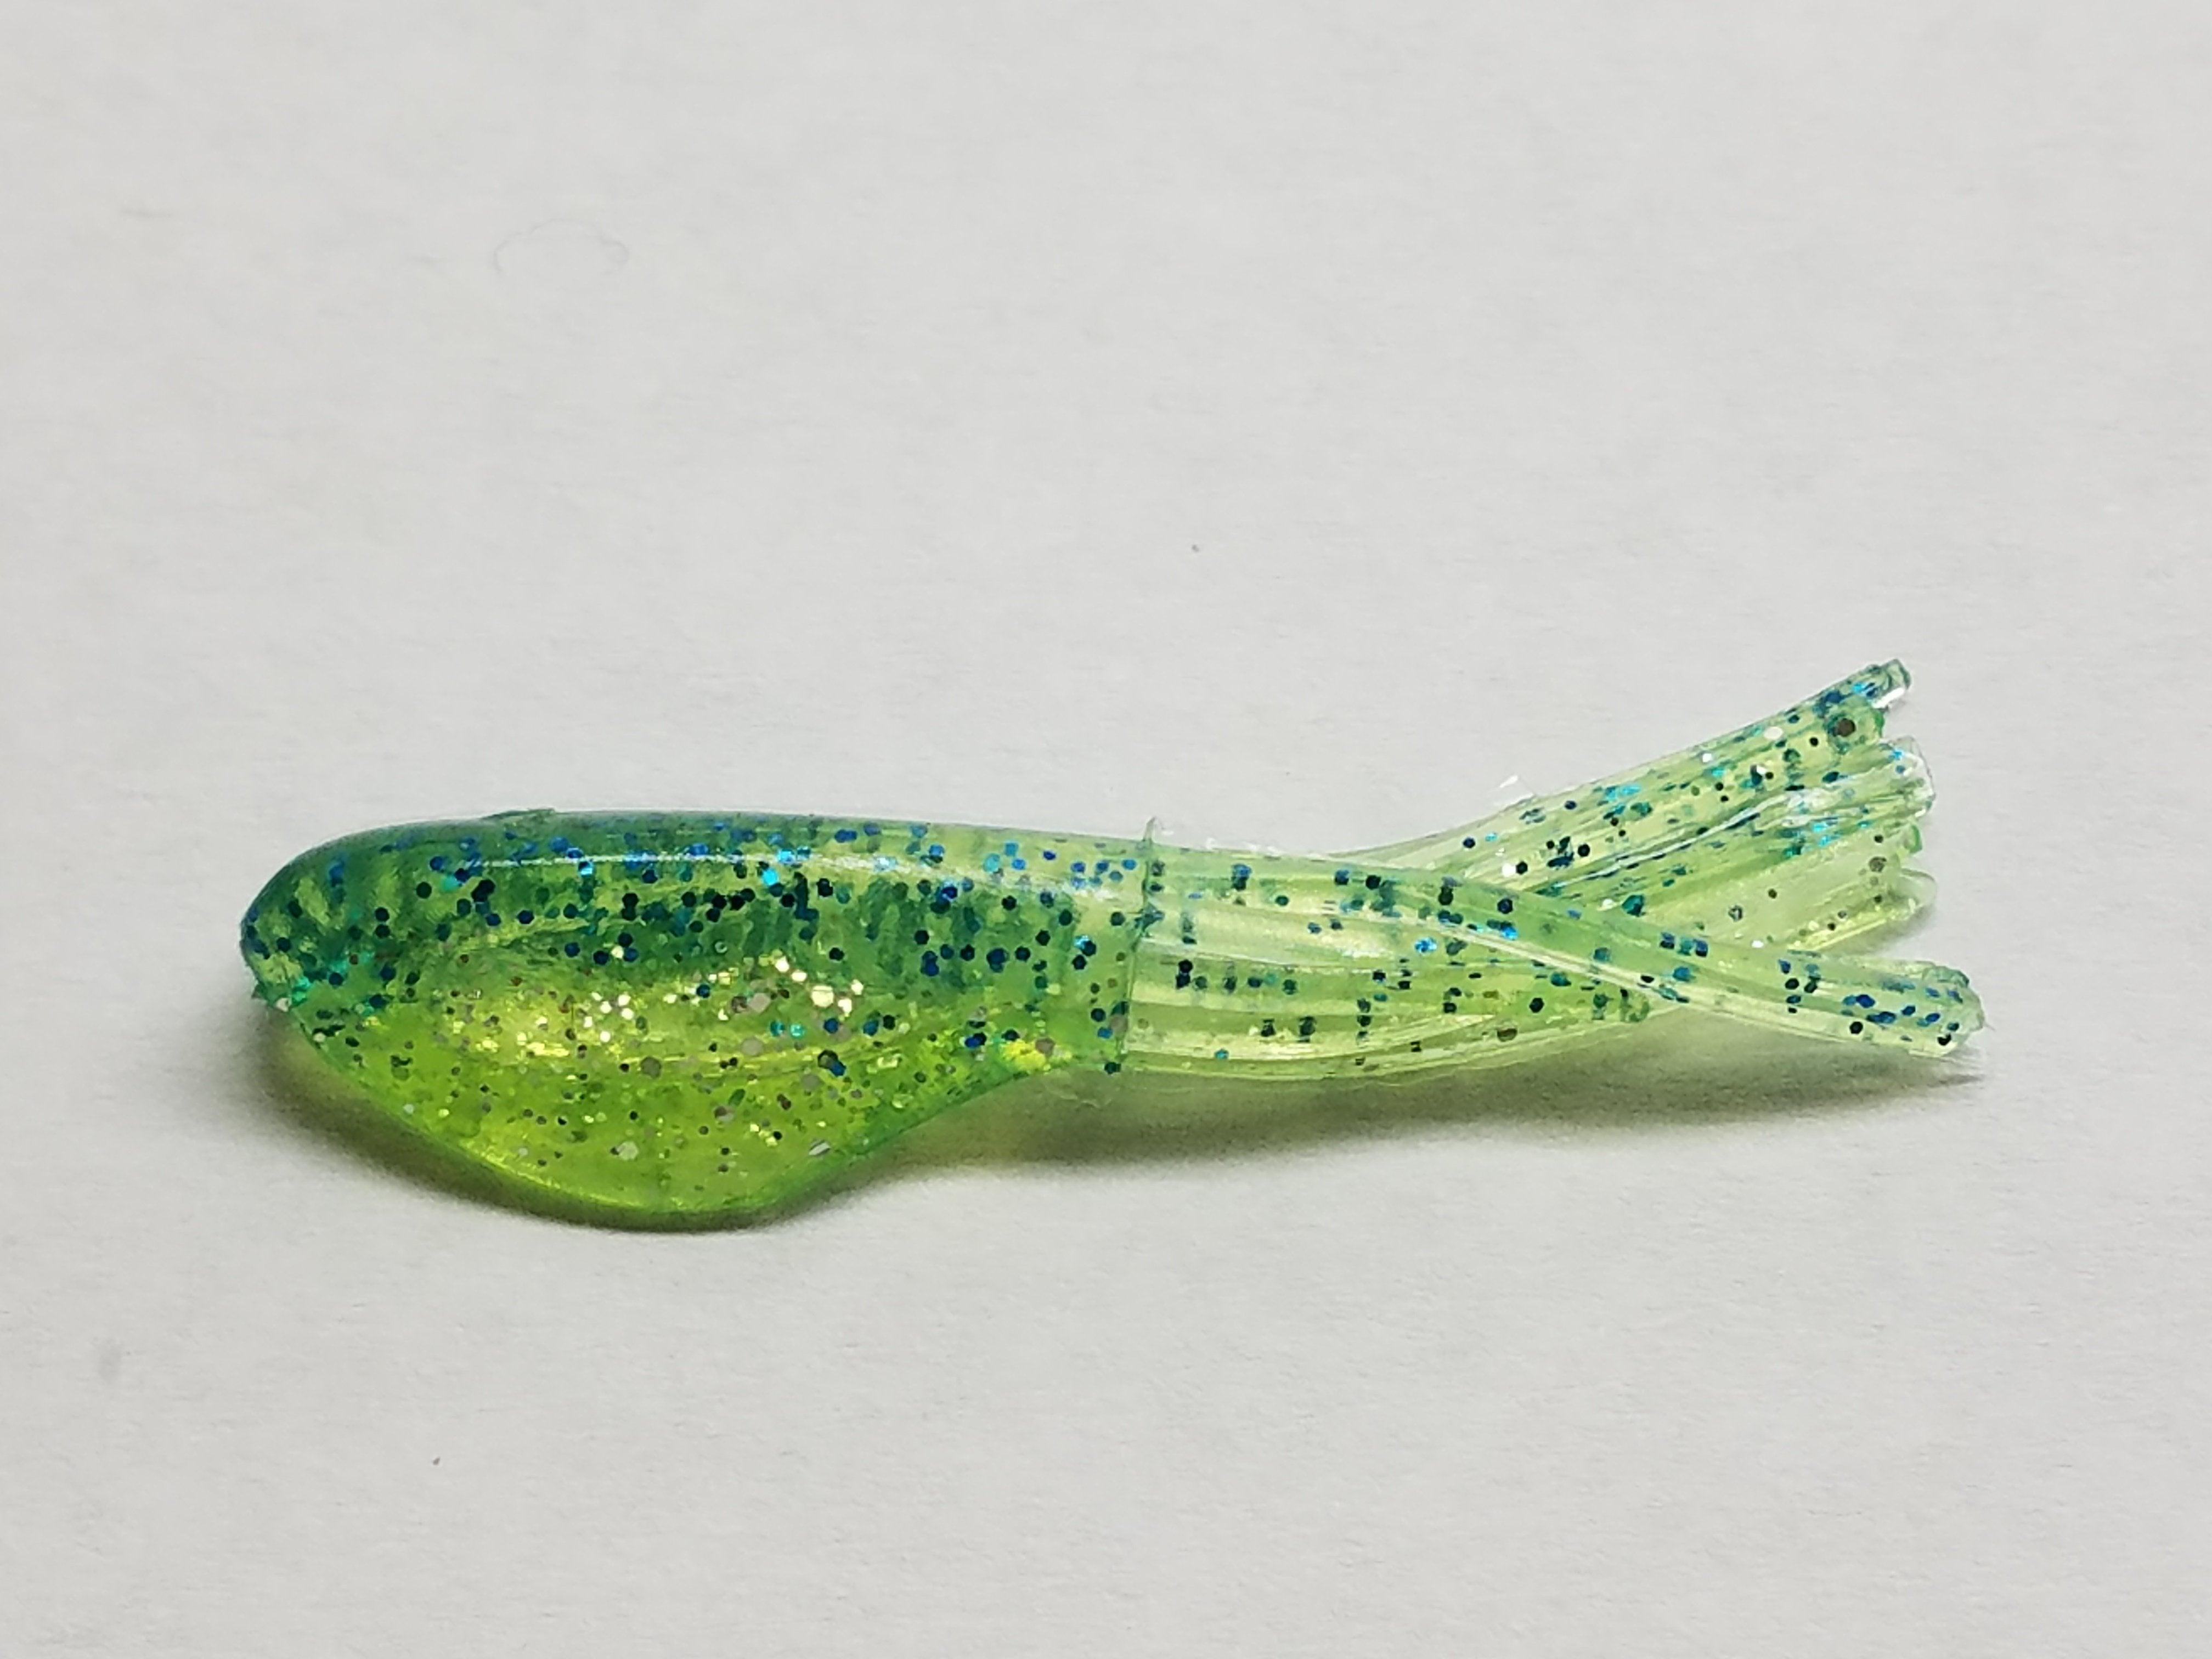 Panfish Lure Green Chart Johnson Crappie Buster Shad Tubes Bait